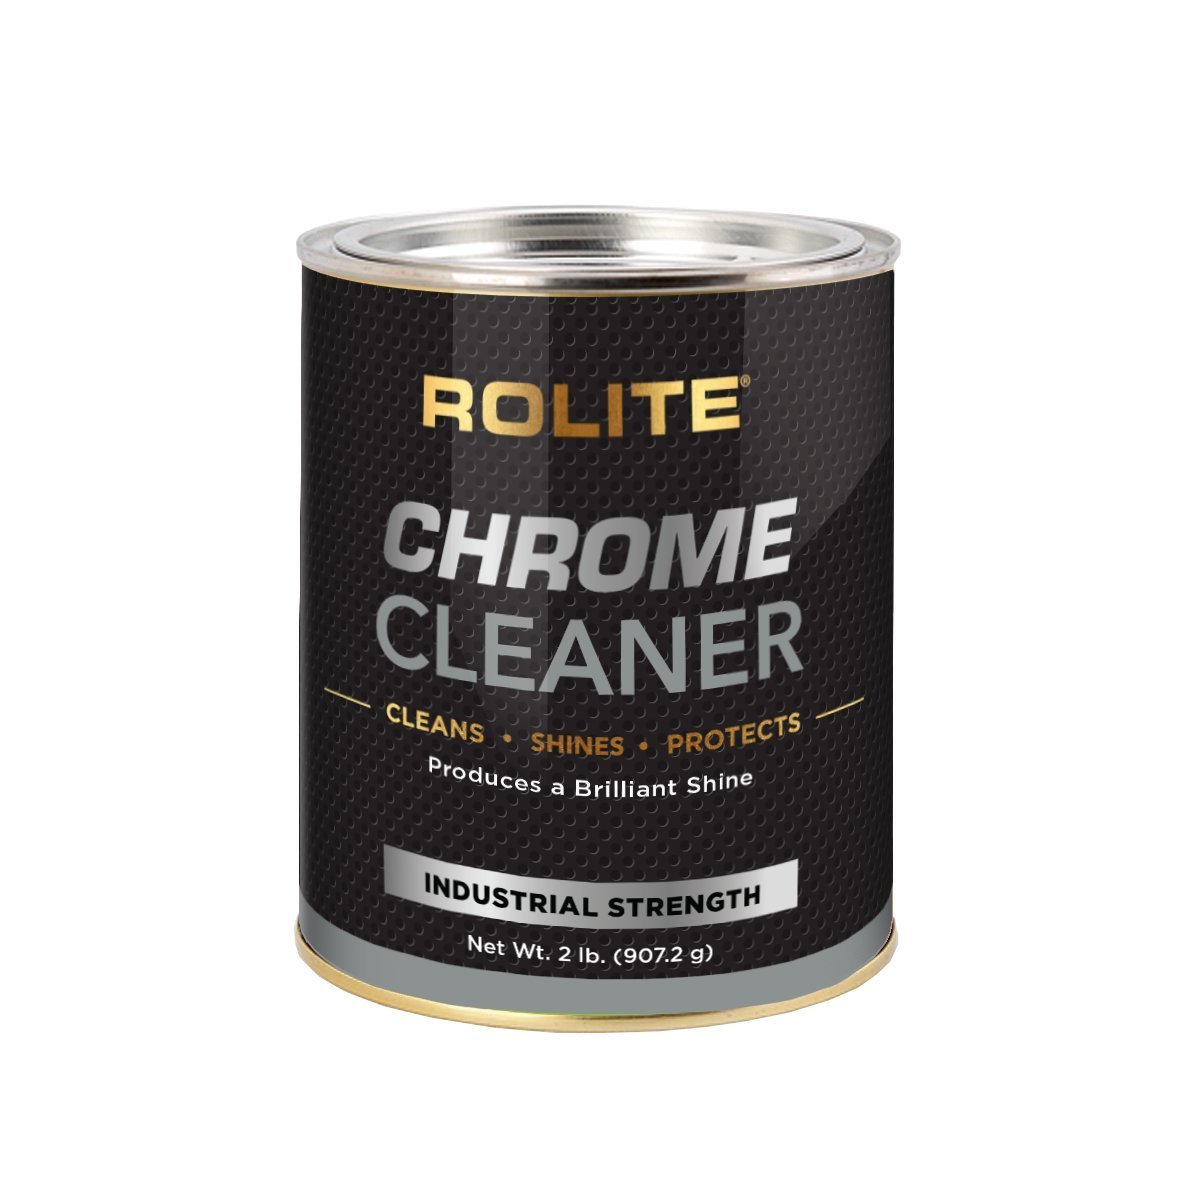 Rolite Chrome Cleaner (2lb) for All Chrome Plated Surfaces. Motorcycles, Automobiles, Boats, RVs, Bumpers and Much More